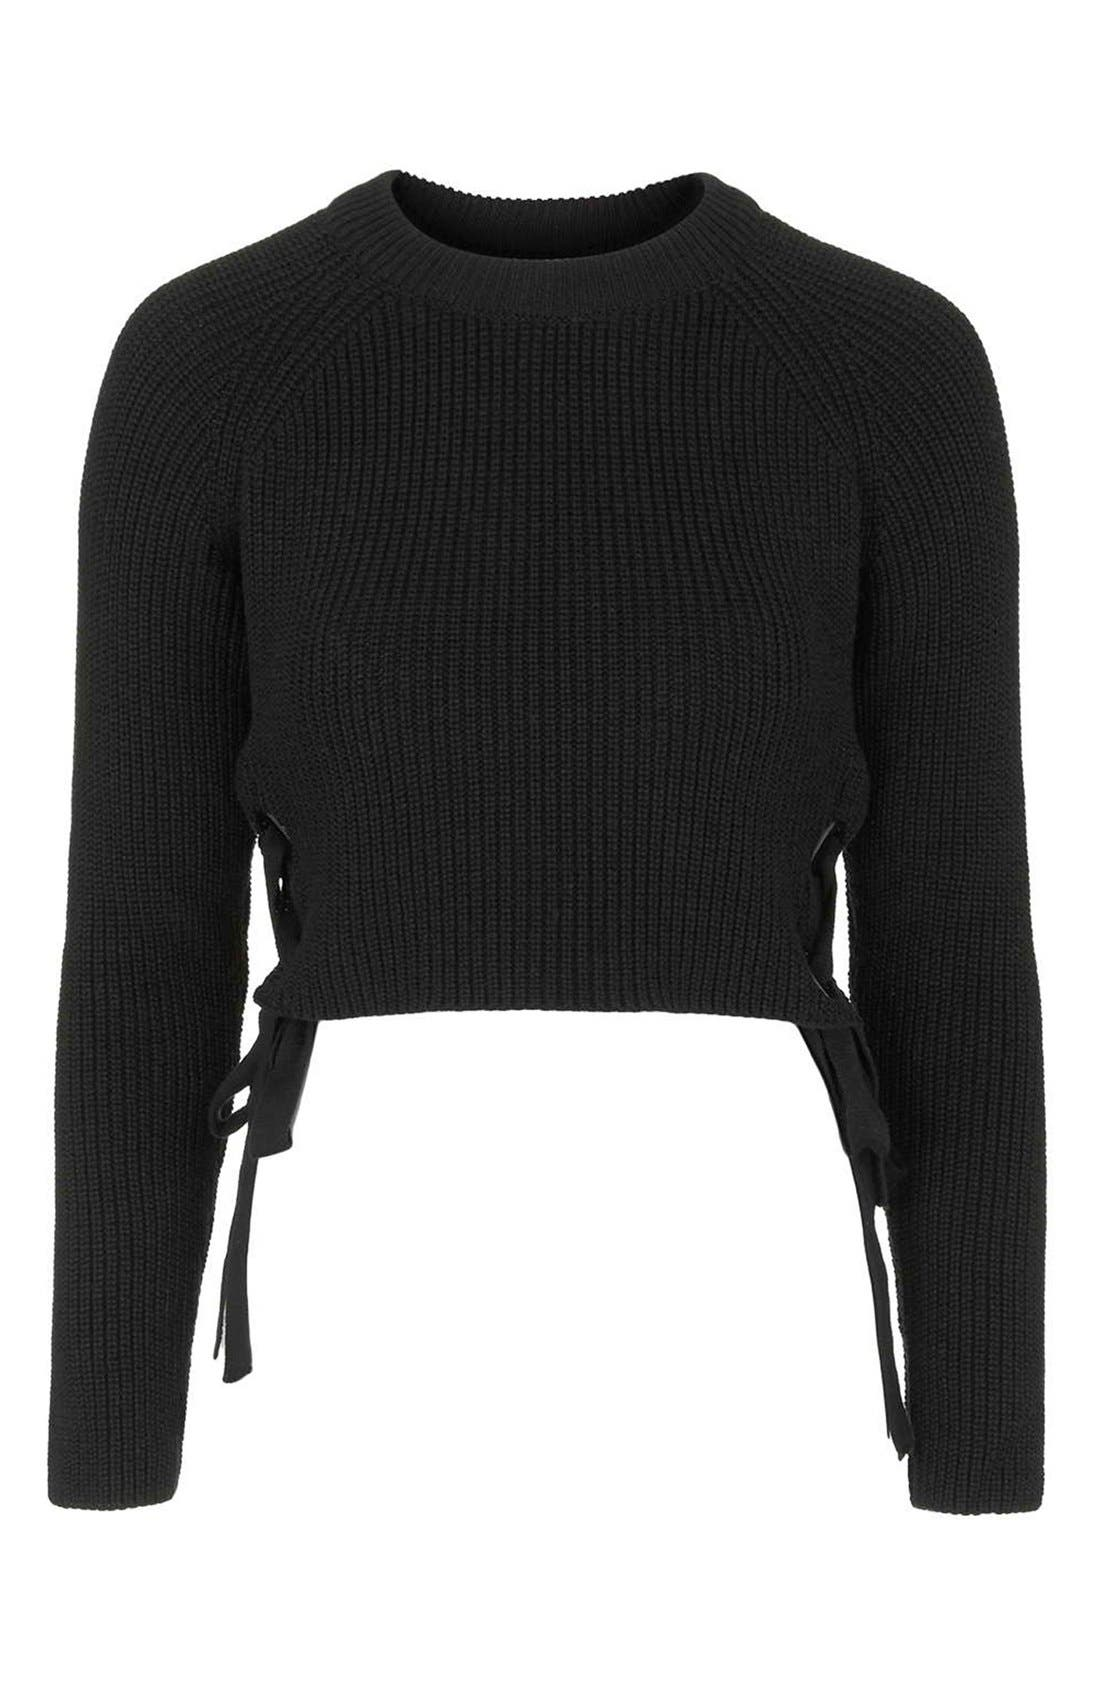 TOPSHOP, Side Tie Crop Sweater, Alternate thumbnail 2, color, 001